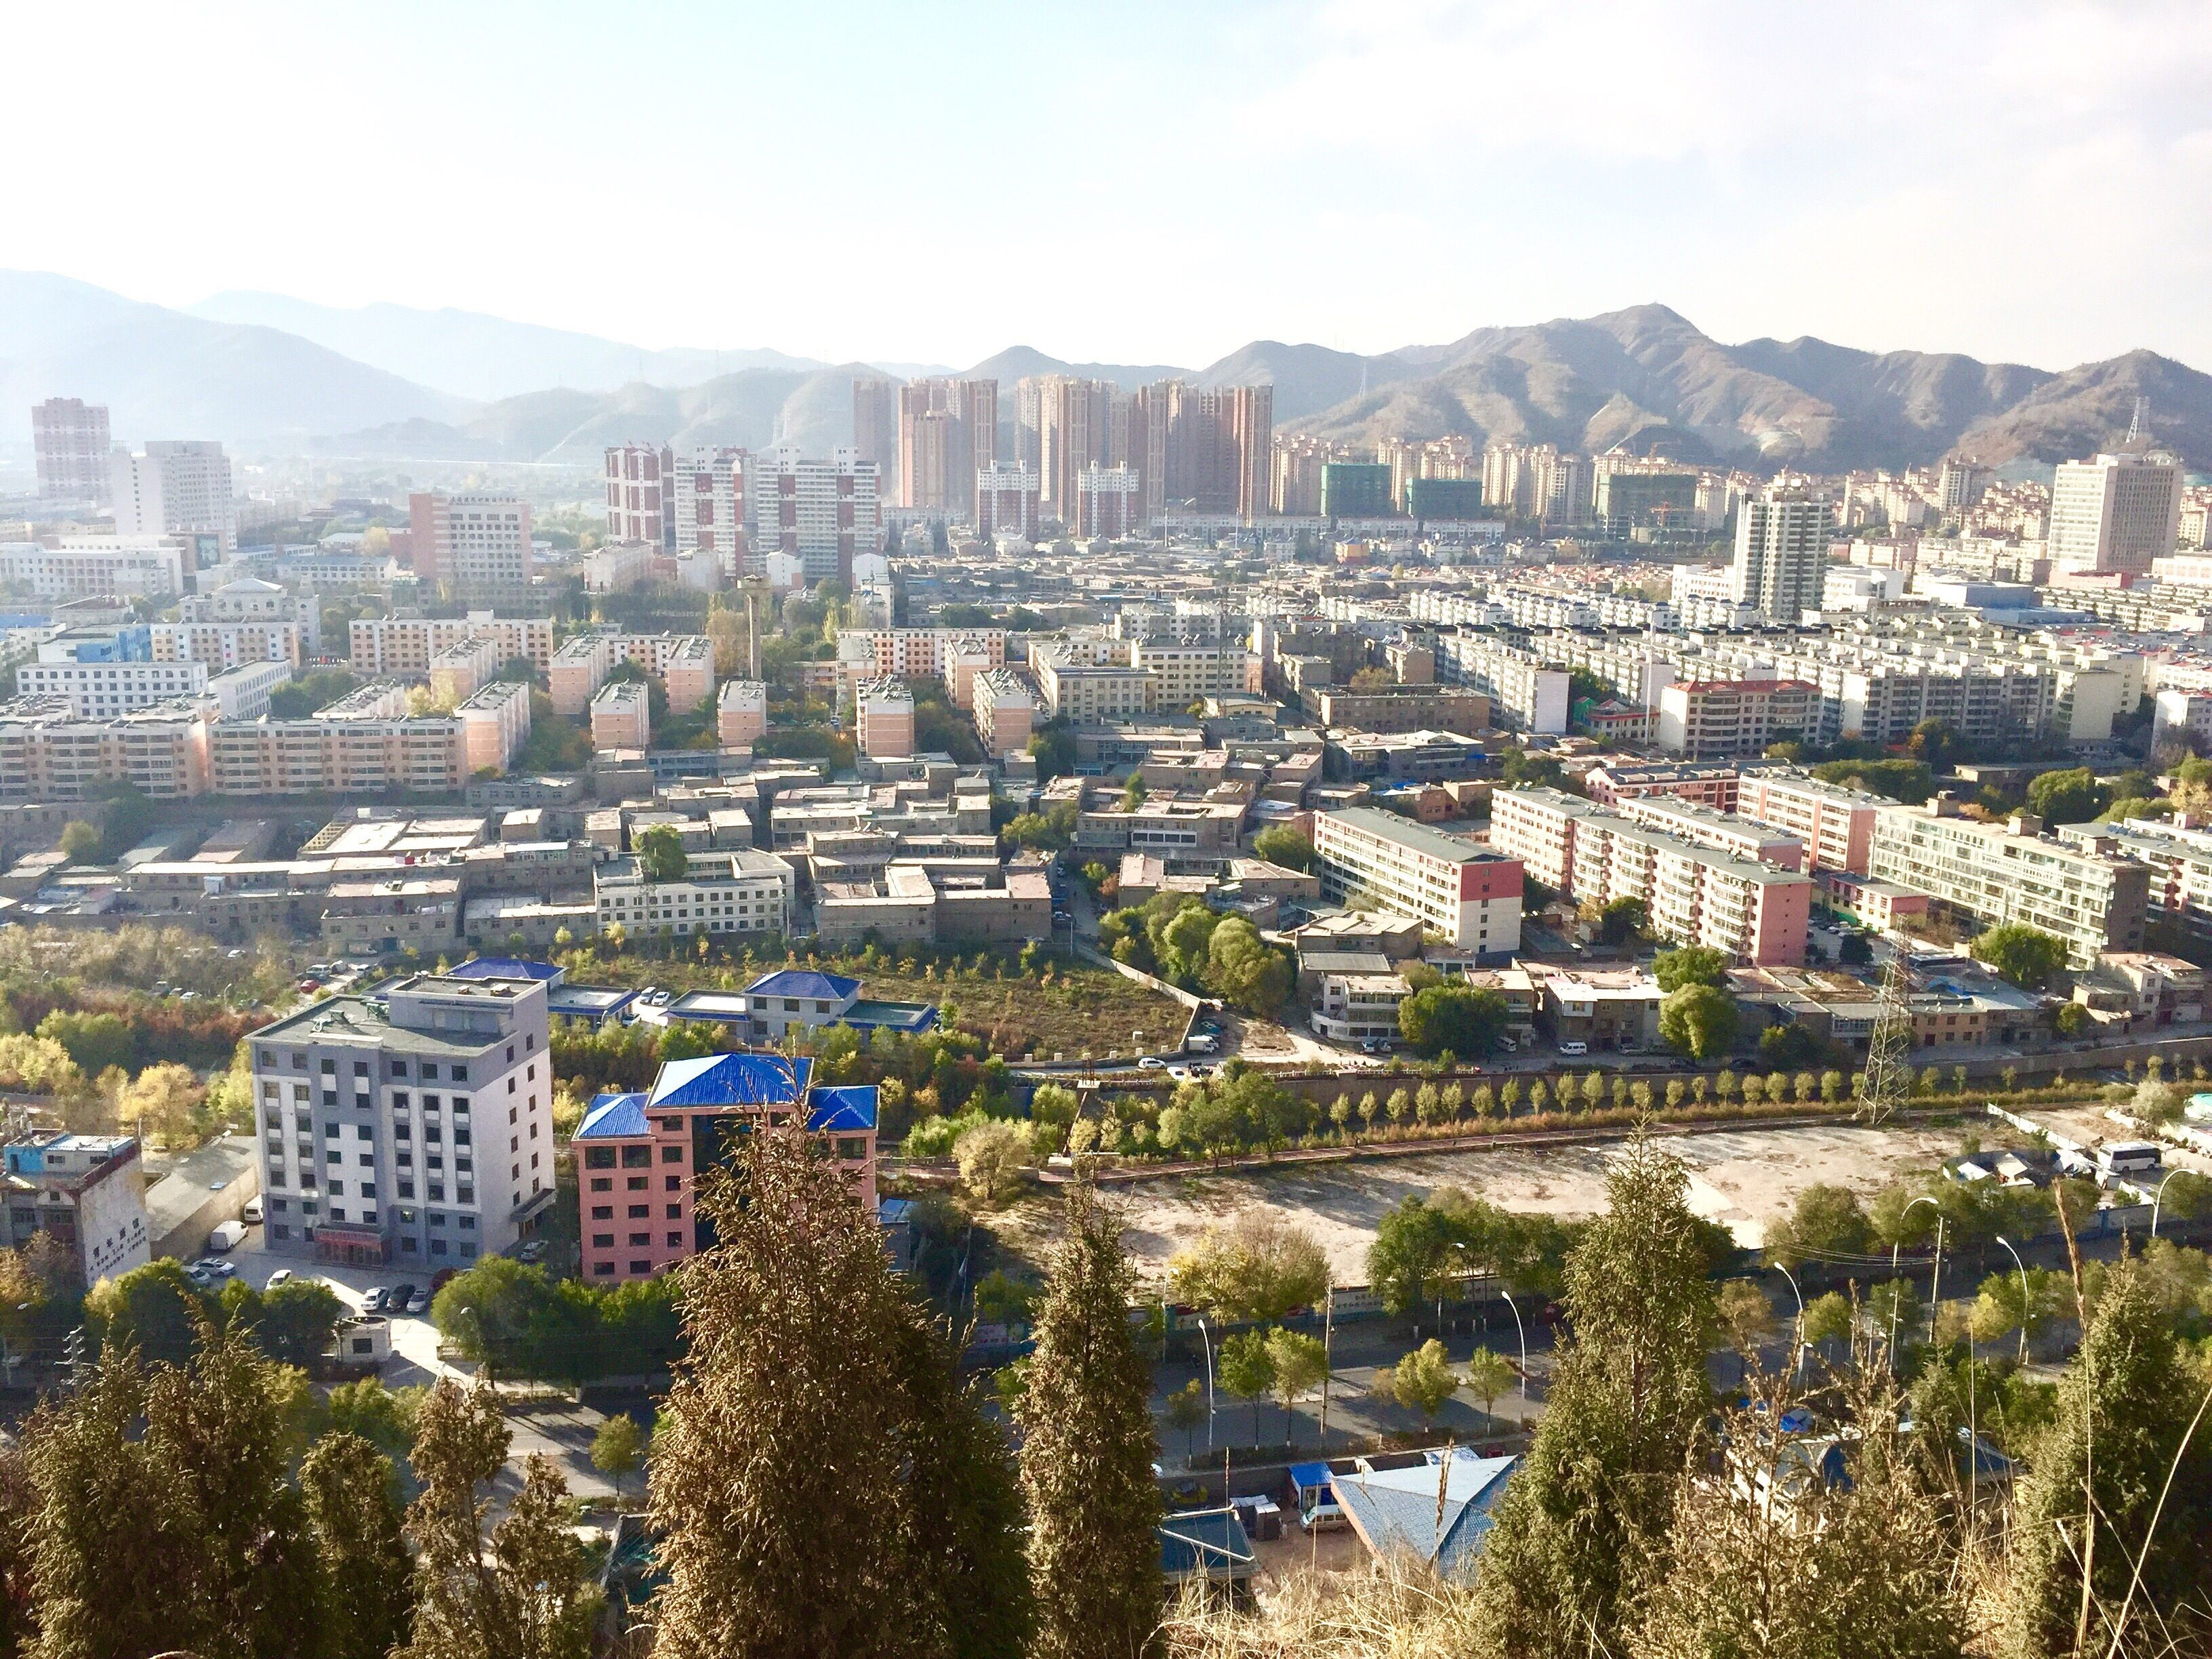 The cityscape of Xining against a mountainous backdrop